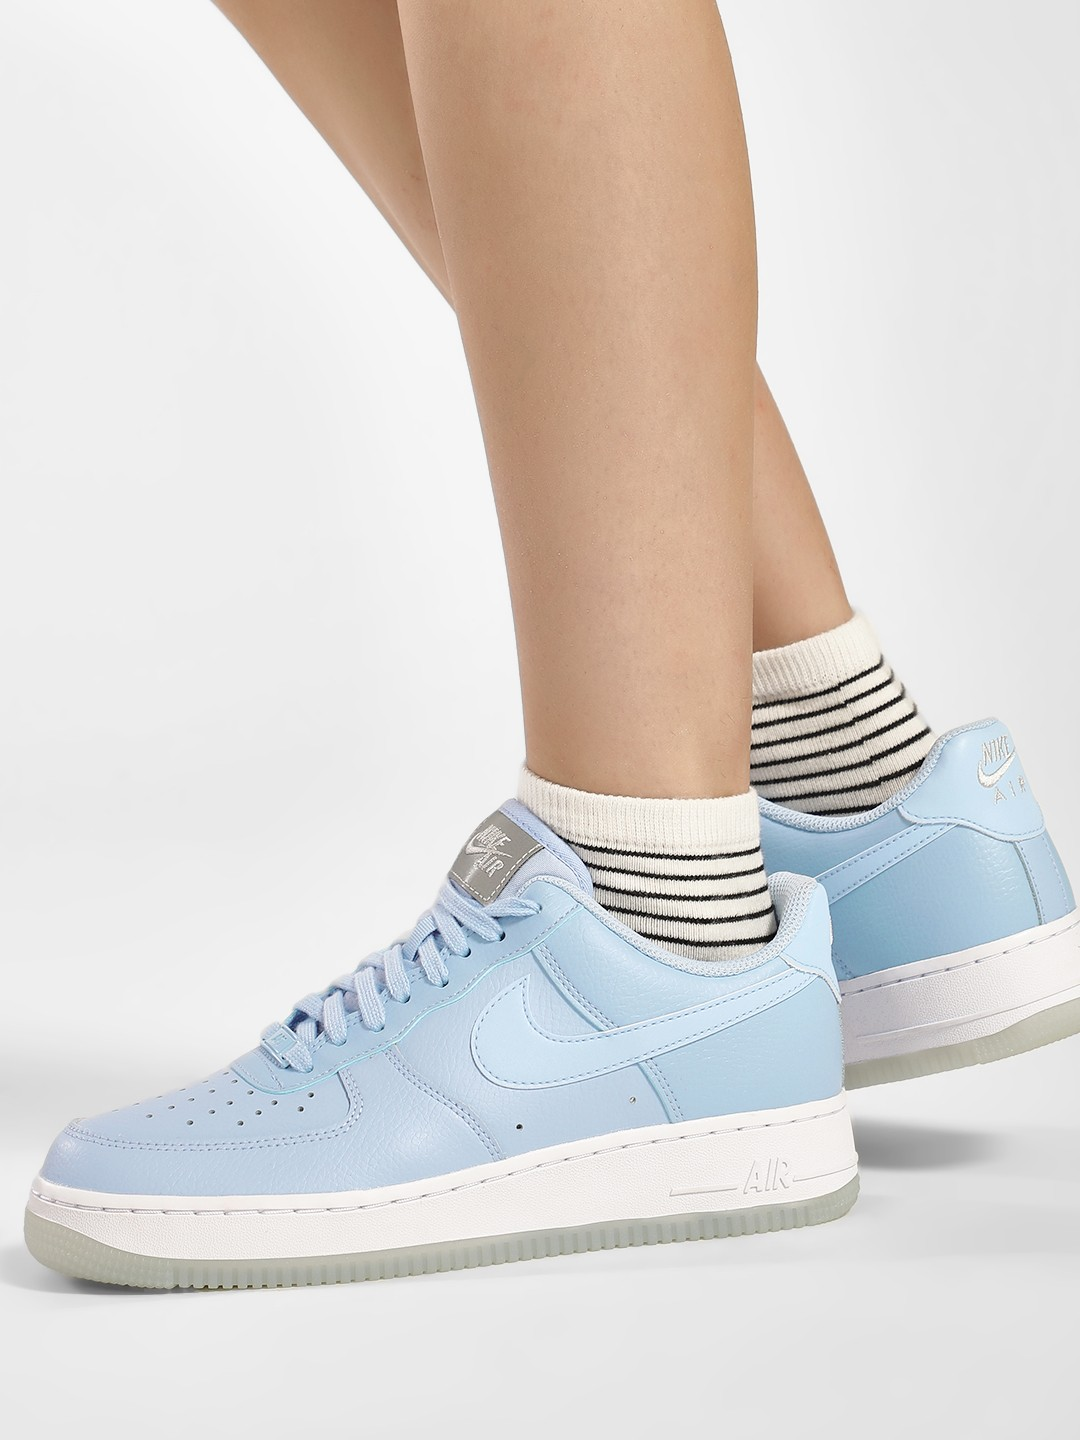 Buy Nike White Air Force 1 '07 Shoes for Girls Online in India